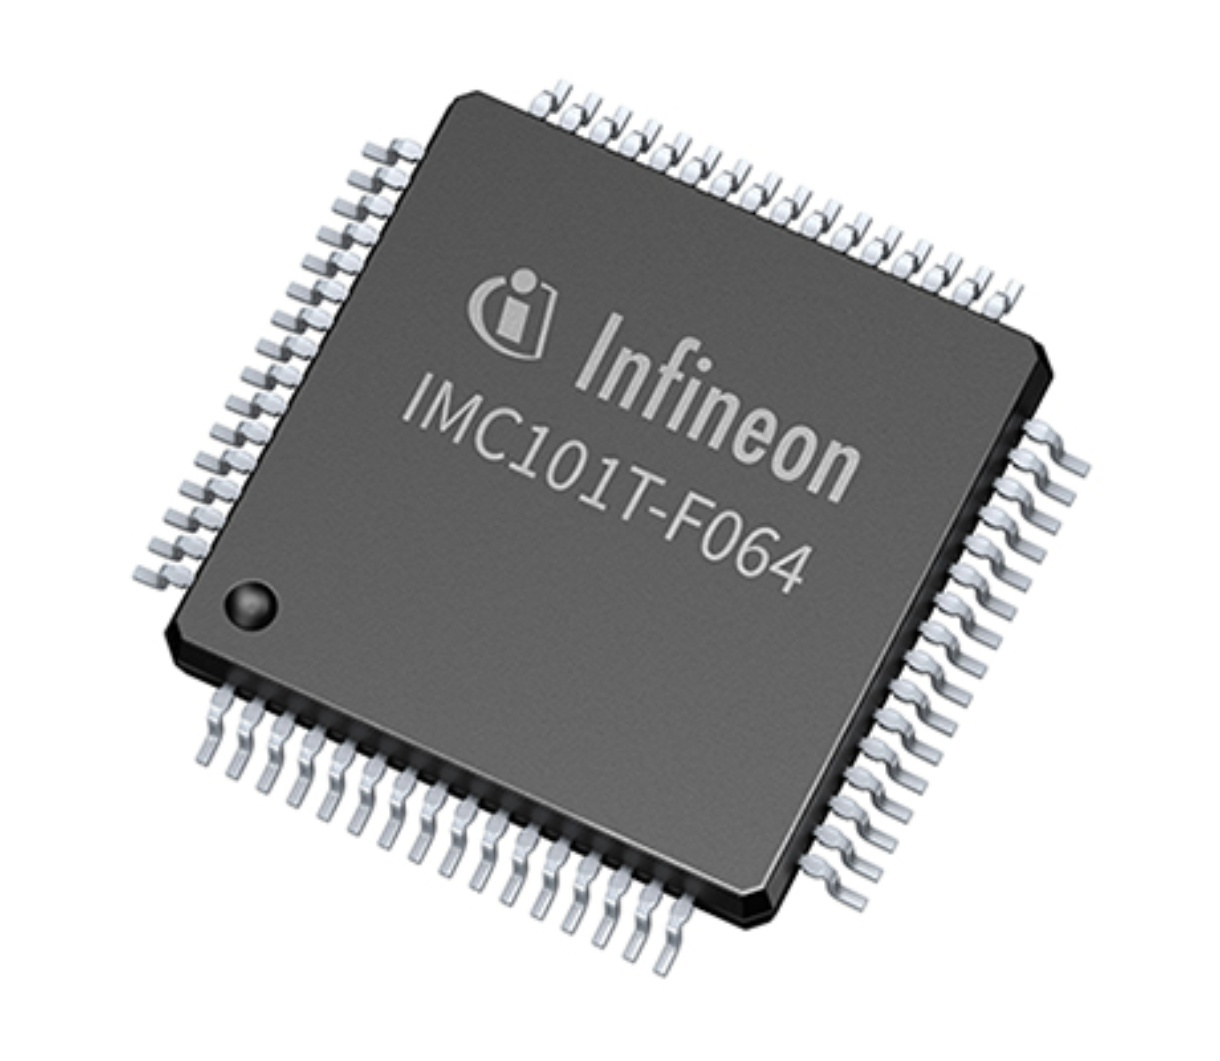 Imc101t F064 Infineon Technologies Gaas Integrated Circuit Technology For High Speed Analog And Digital 01 02 2018 07 24 Pdf 1 Mb